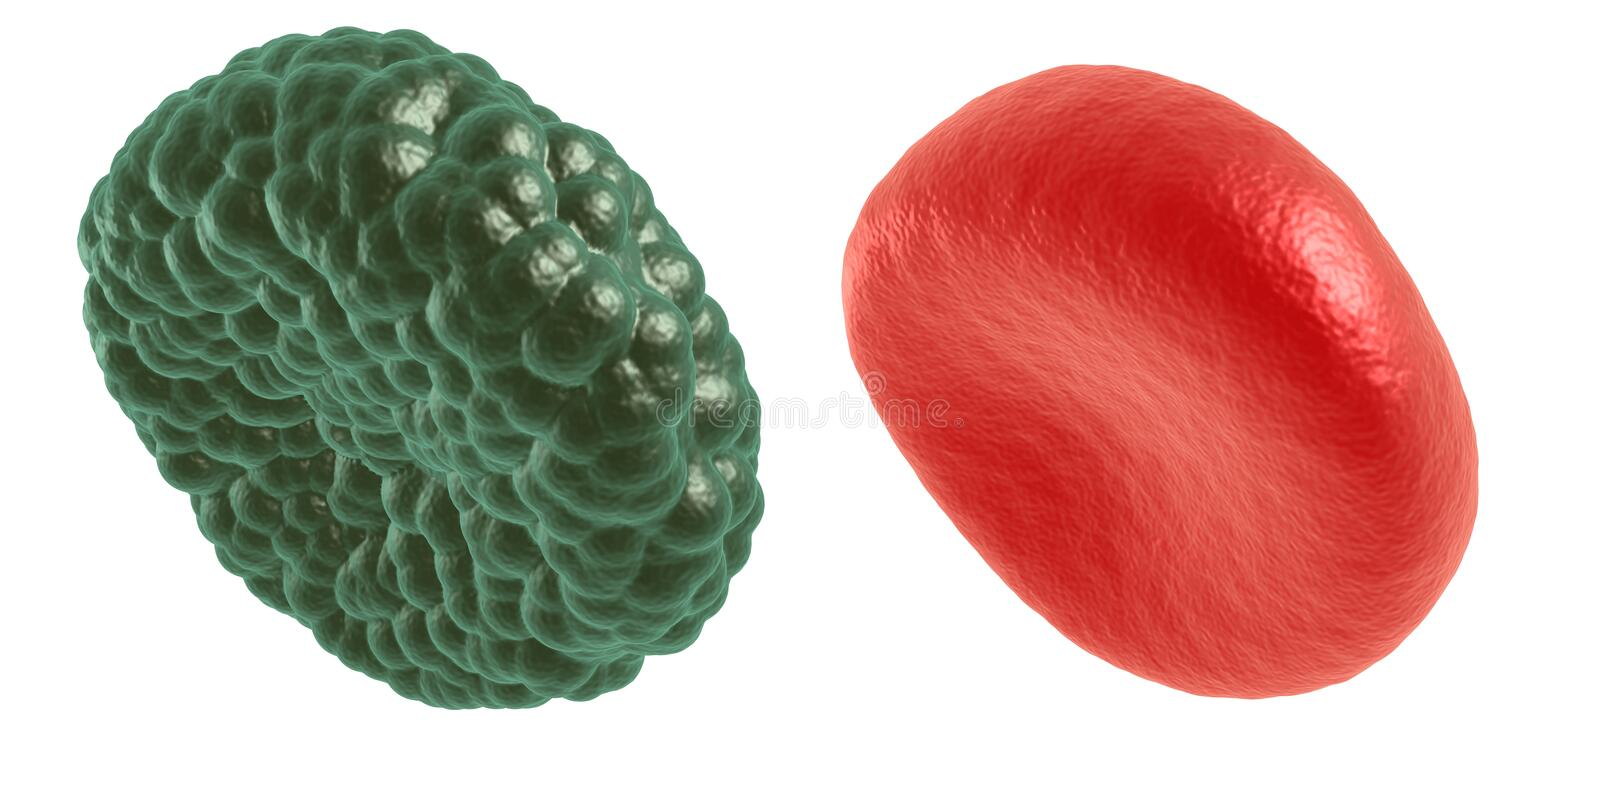 Download Green Illness And Red Blood Cell Stock Illustration - Illustration of medical, cell: 83736755